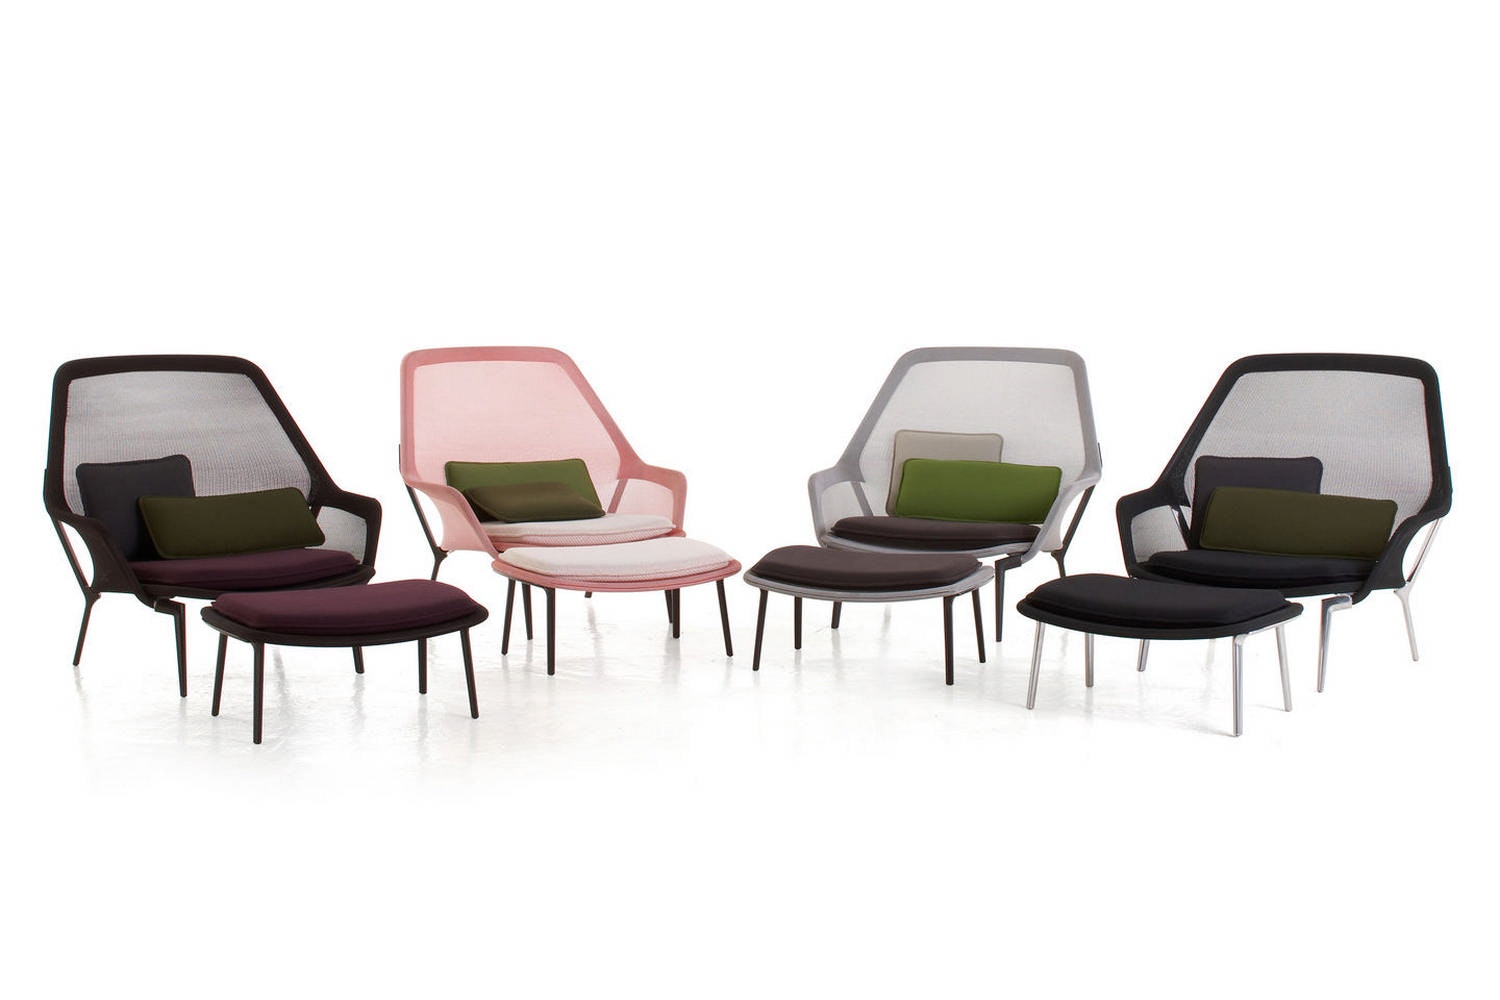 Slow Chair & Ottoman by Ronan & Erwan Bouroullec for Vitra